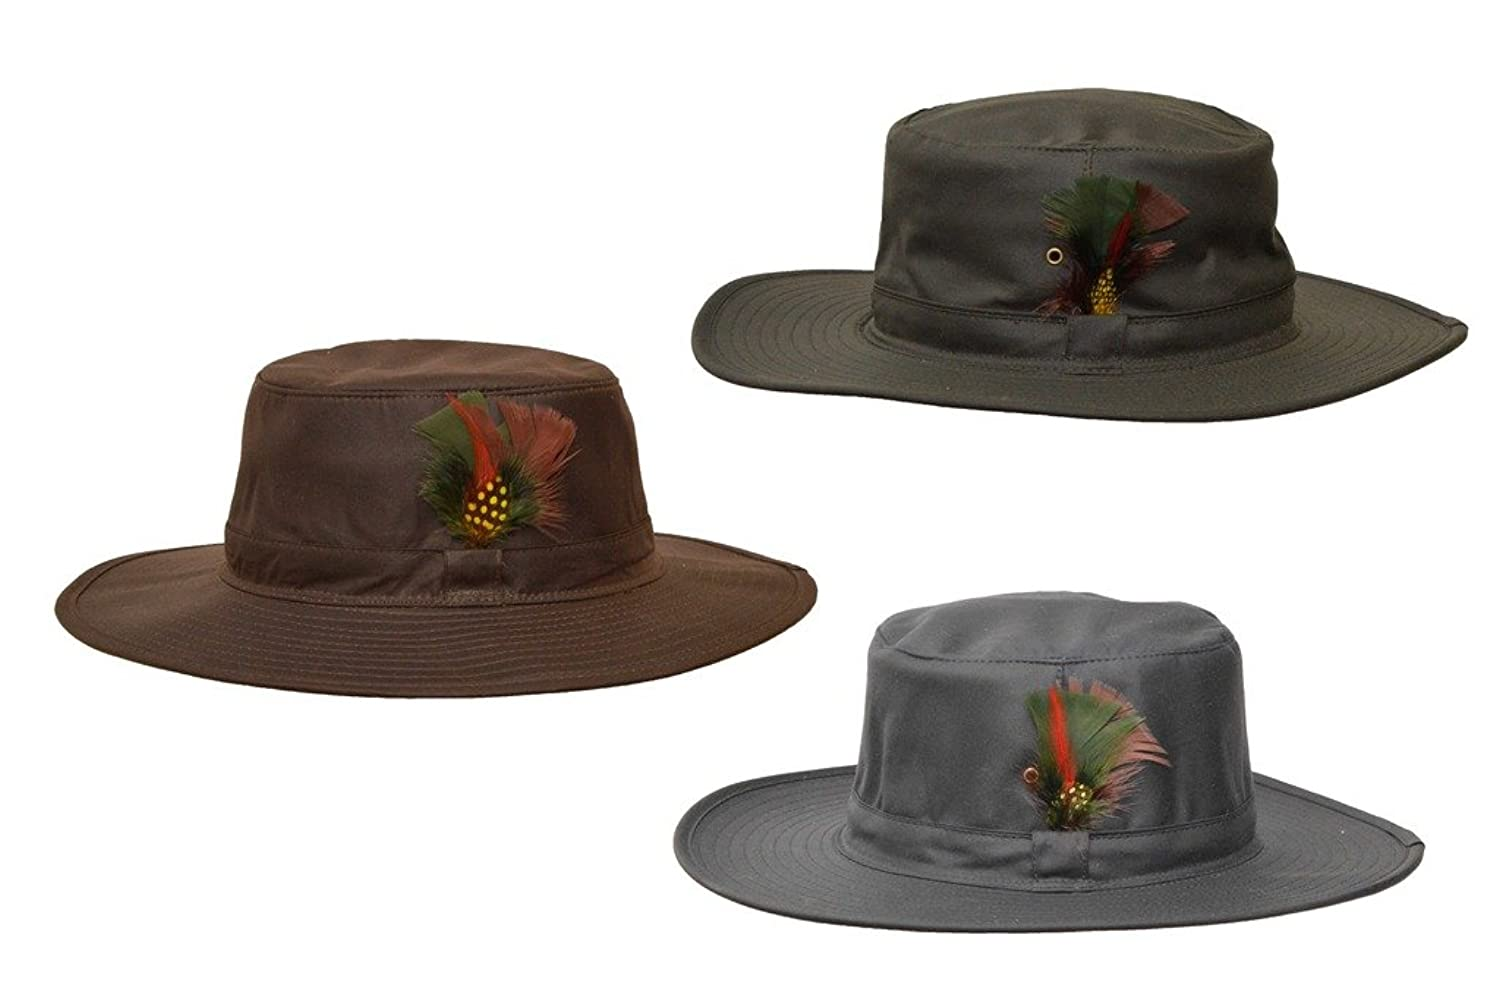 Men's Vintage Workwear – 1920s, 1930s, 1940s, 1950s Walker and Hawkes Mens Wax Outback Aussie Wide Brim Hat  AT vintagedancer.com